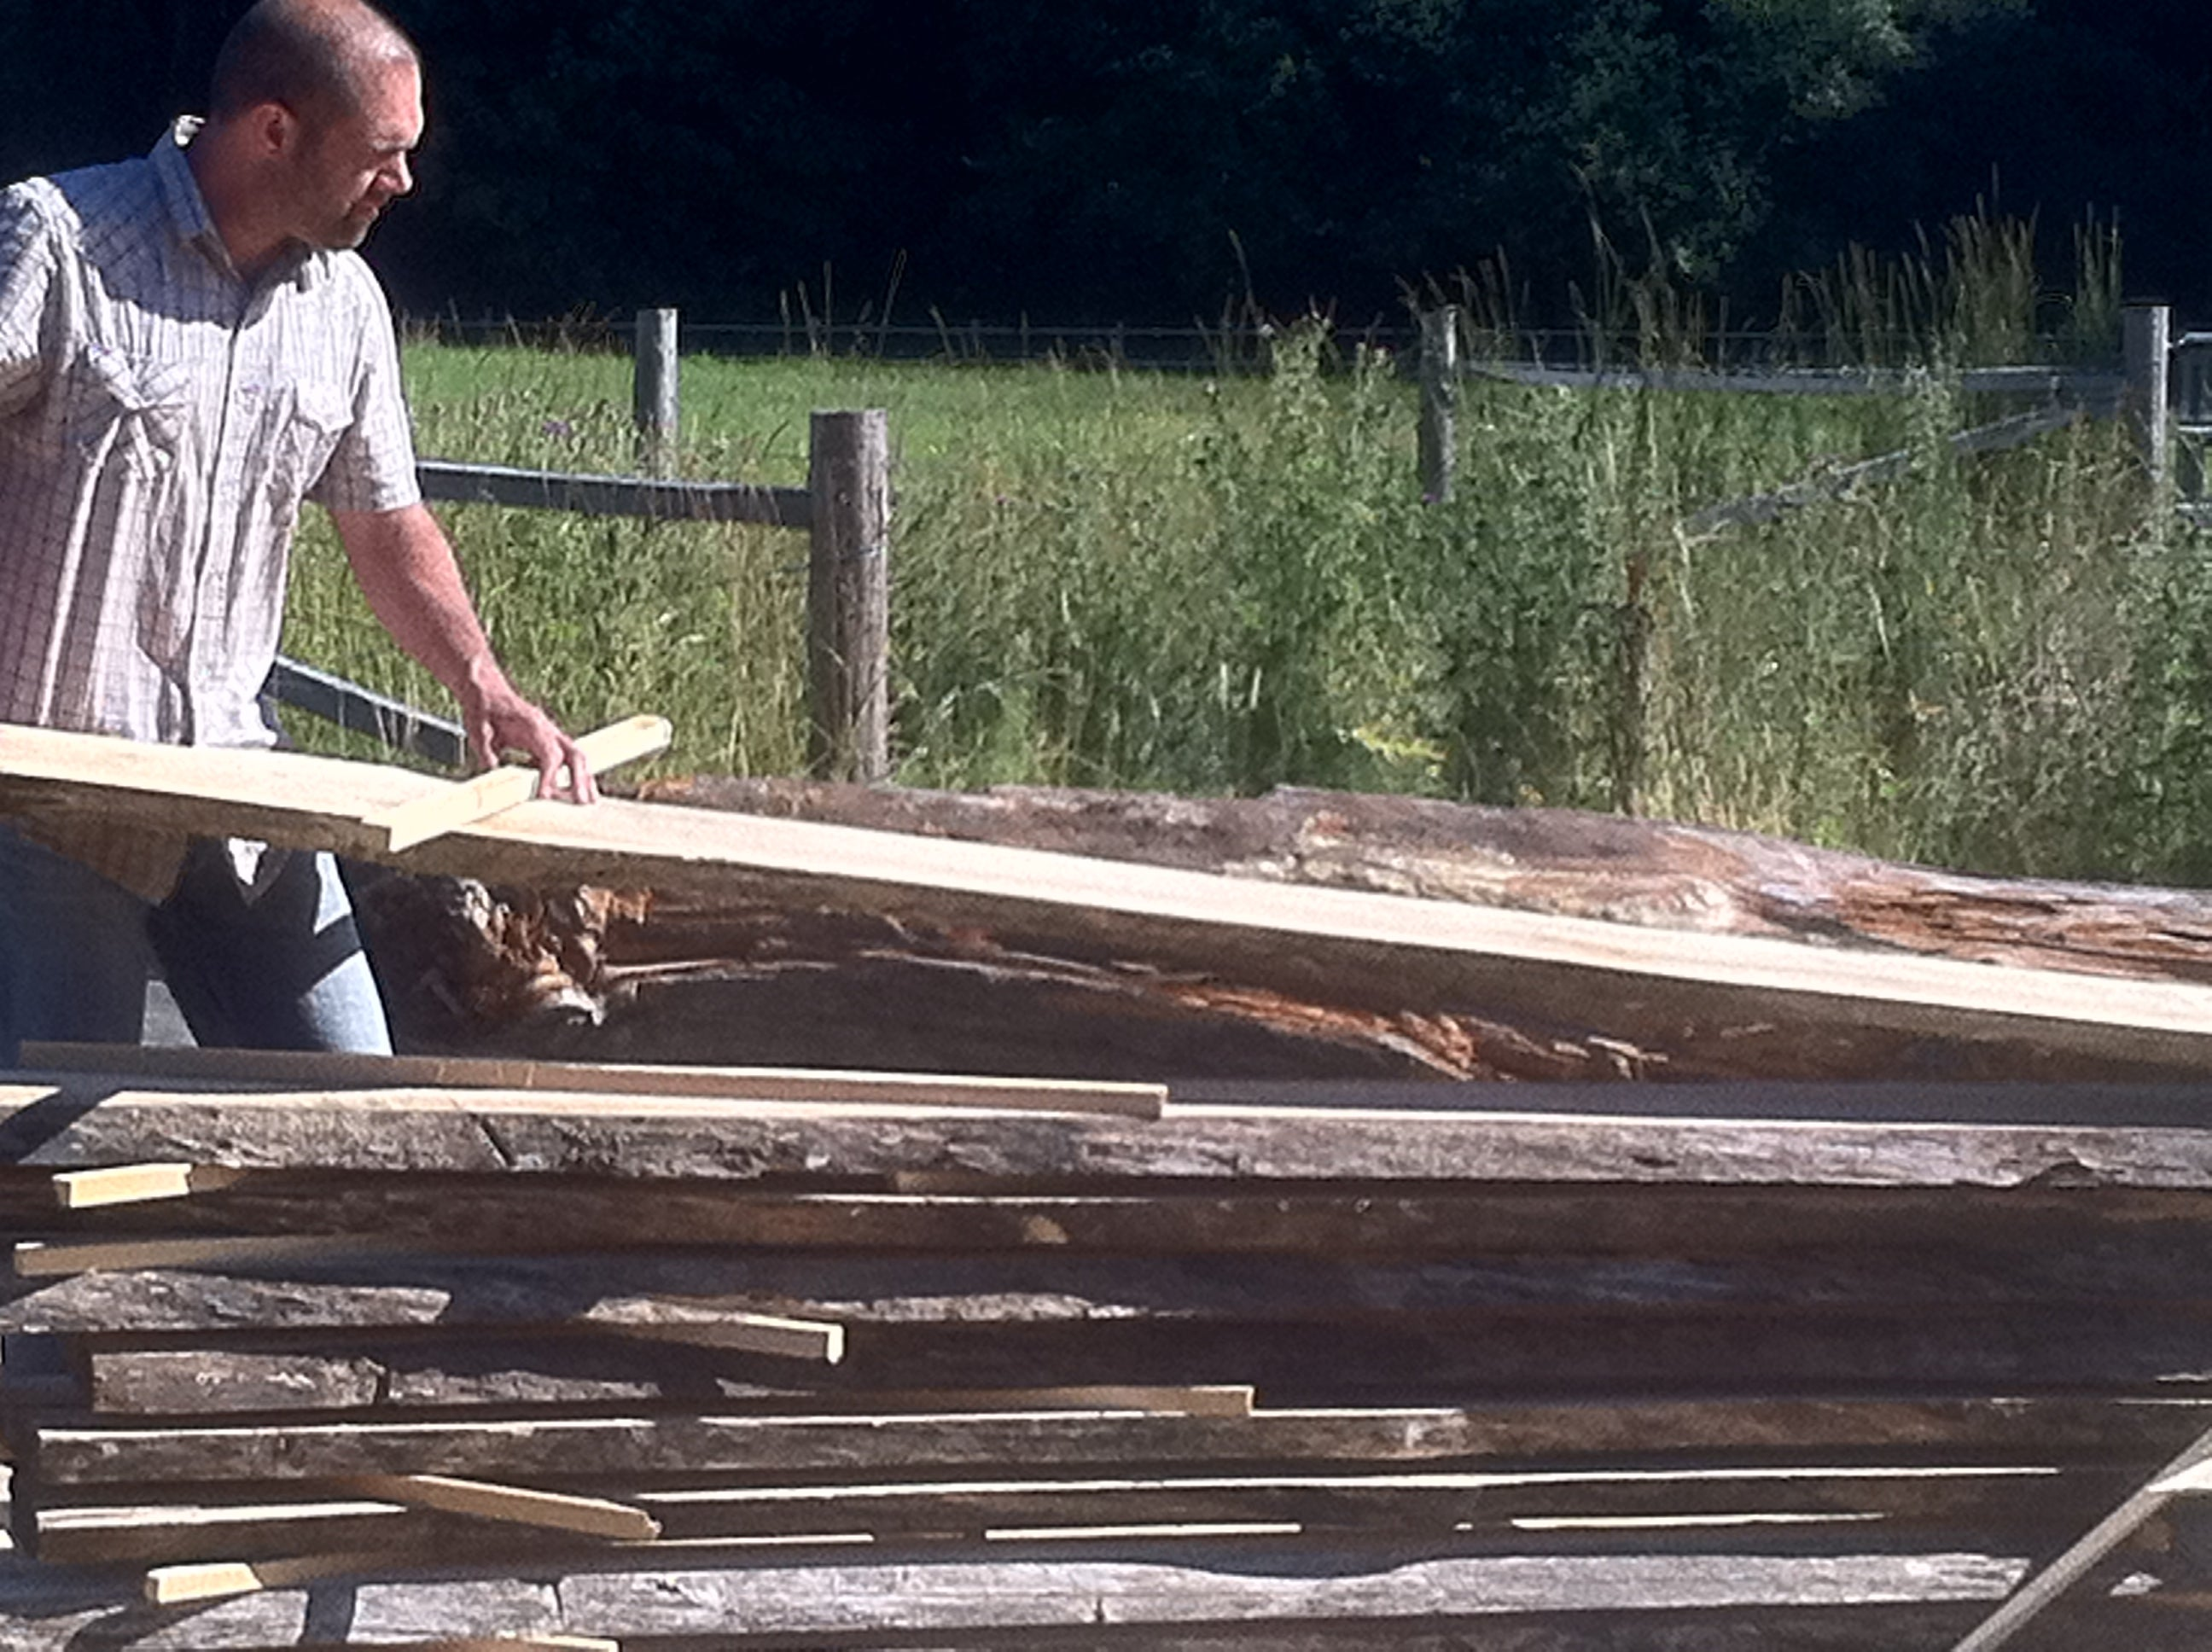 Owner Paul Arcoite inspecting reclaimed live edge wood planks to be used for feature walls and furniture.